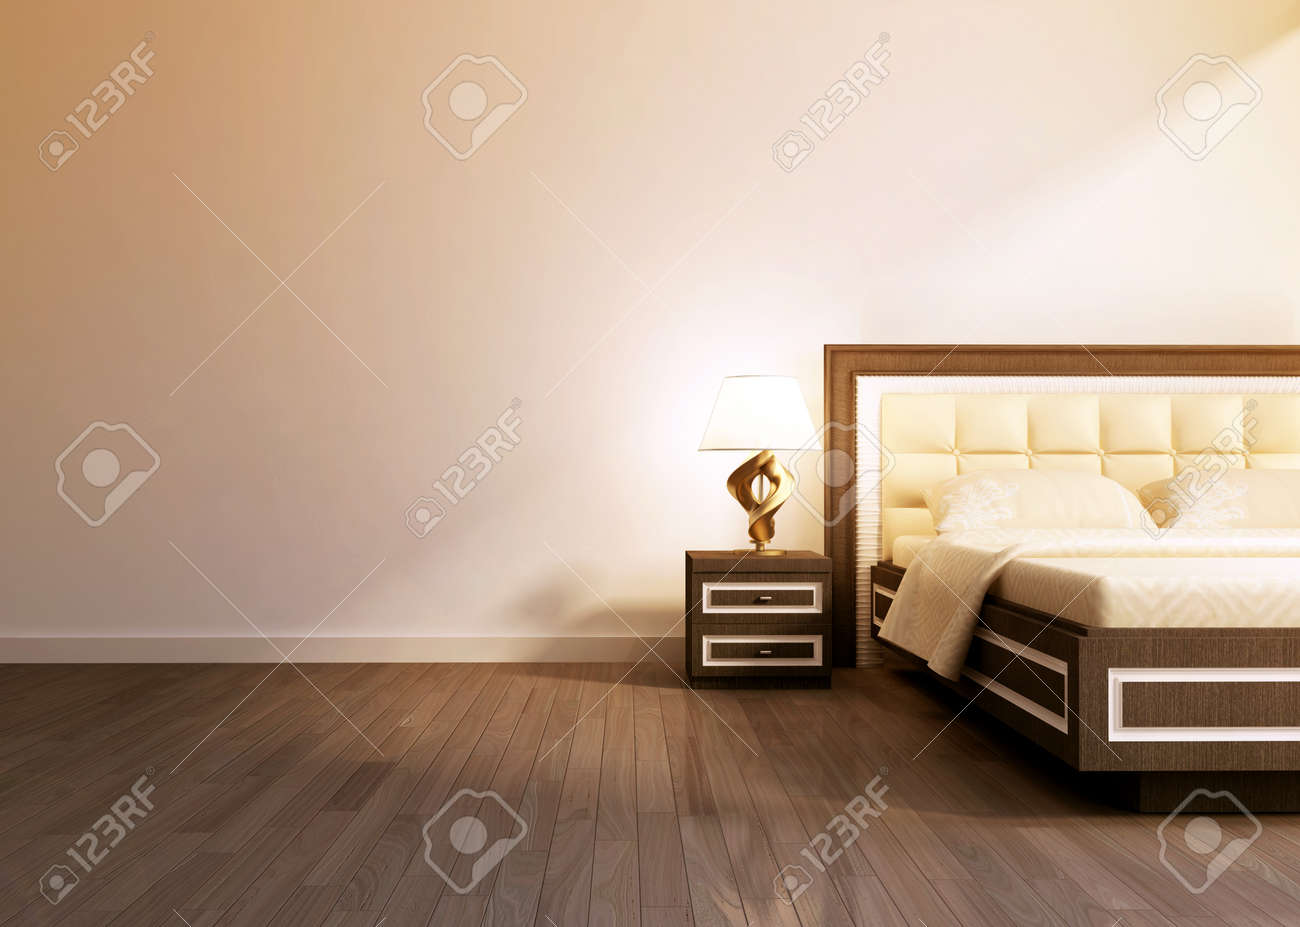 Imagens   Modern Interior Room With King Size Bad. 3D Rendering